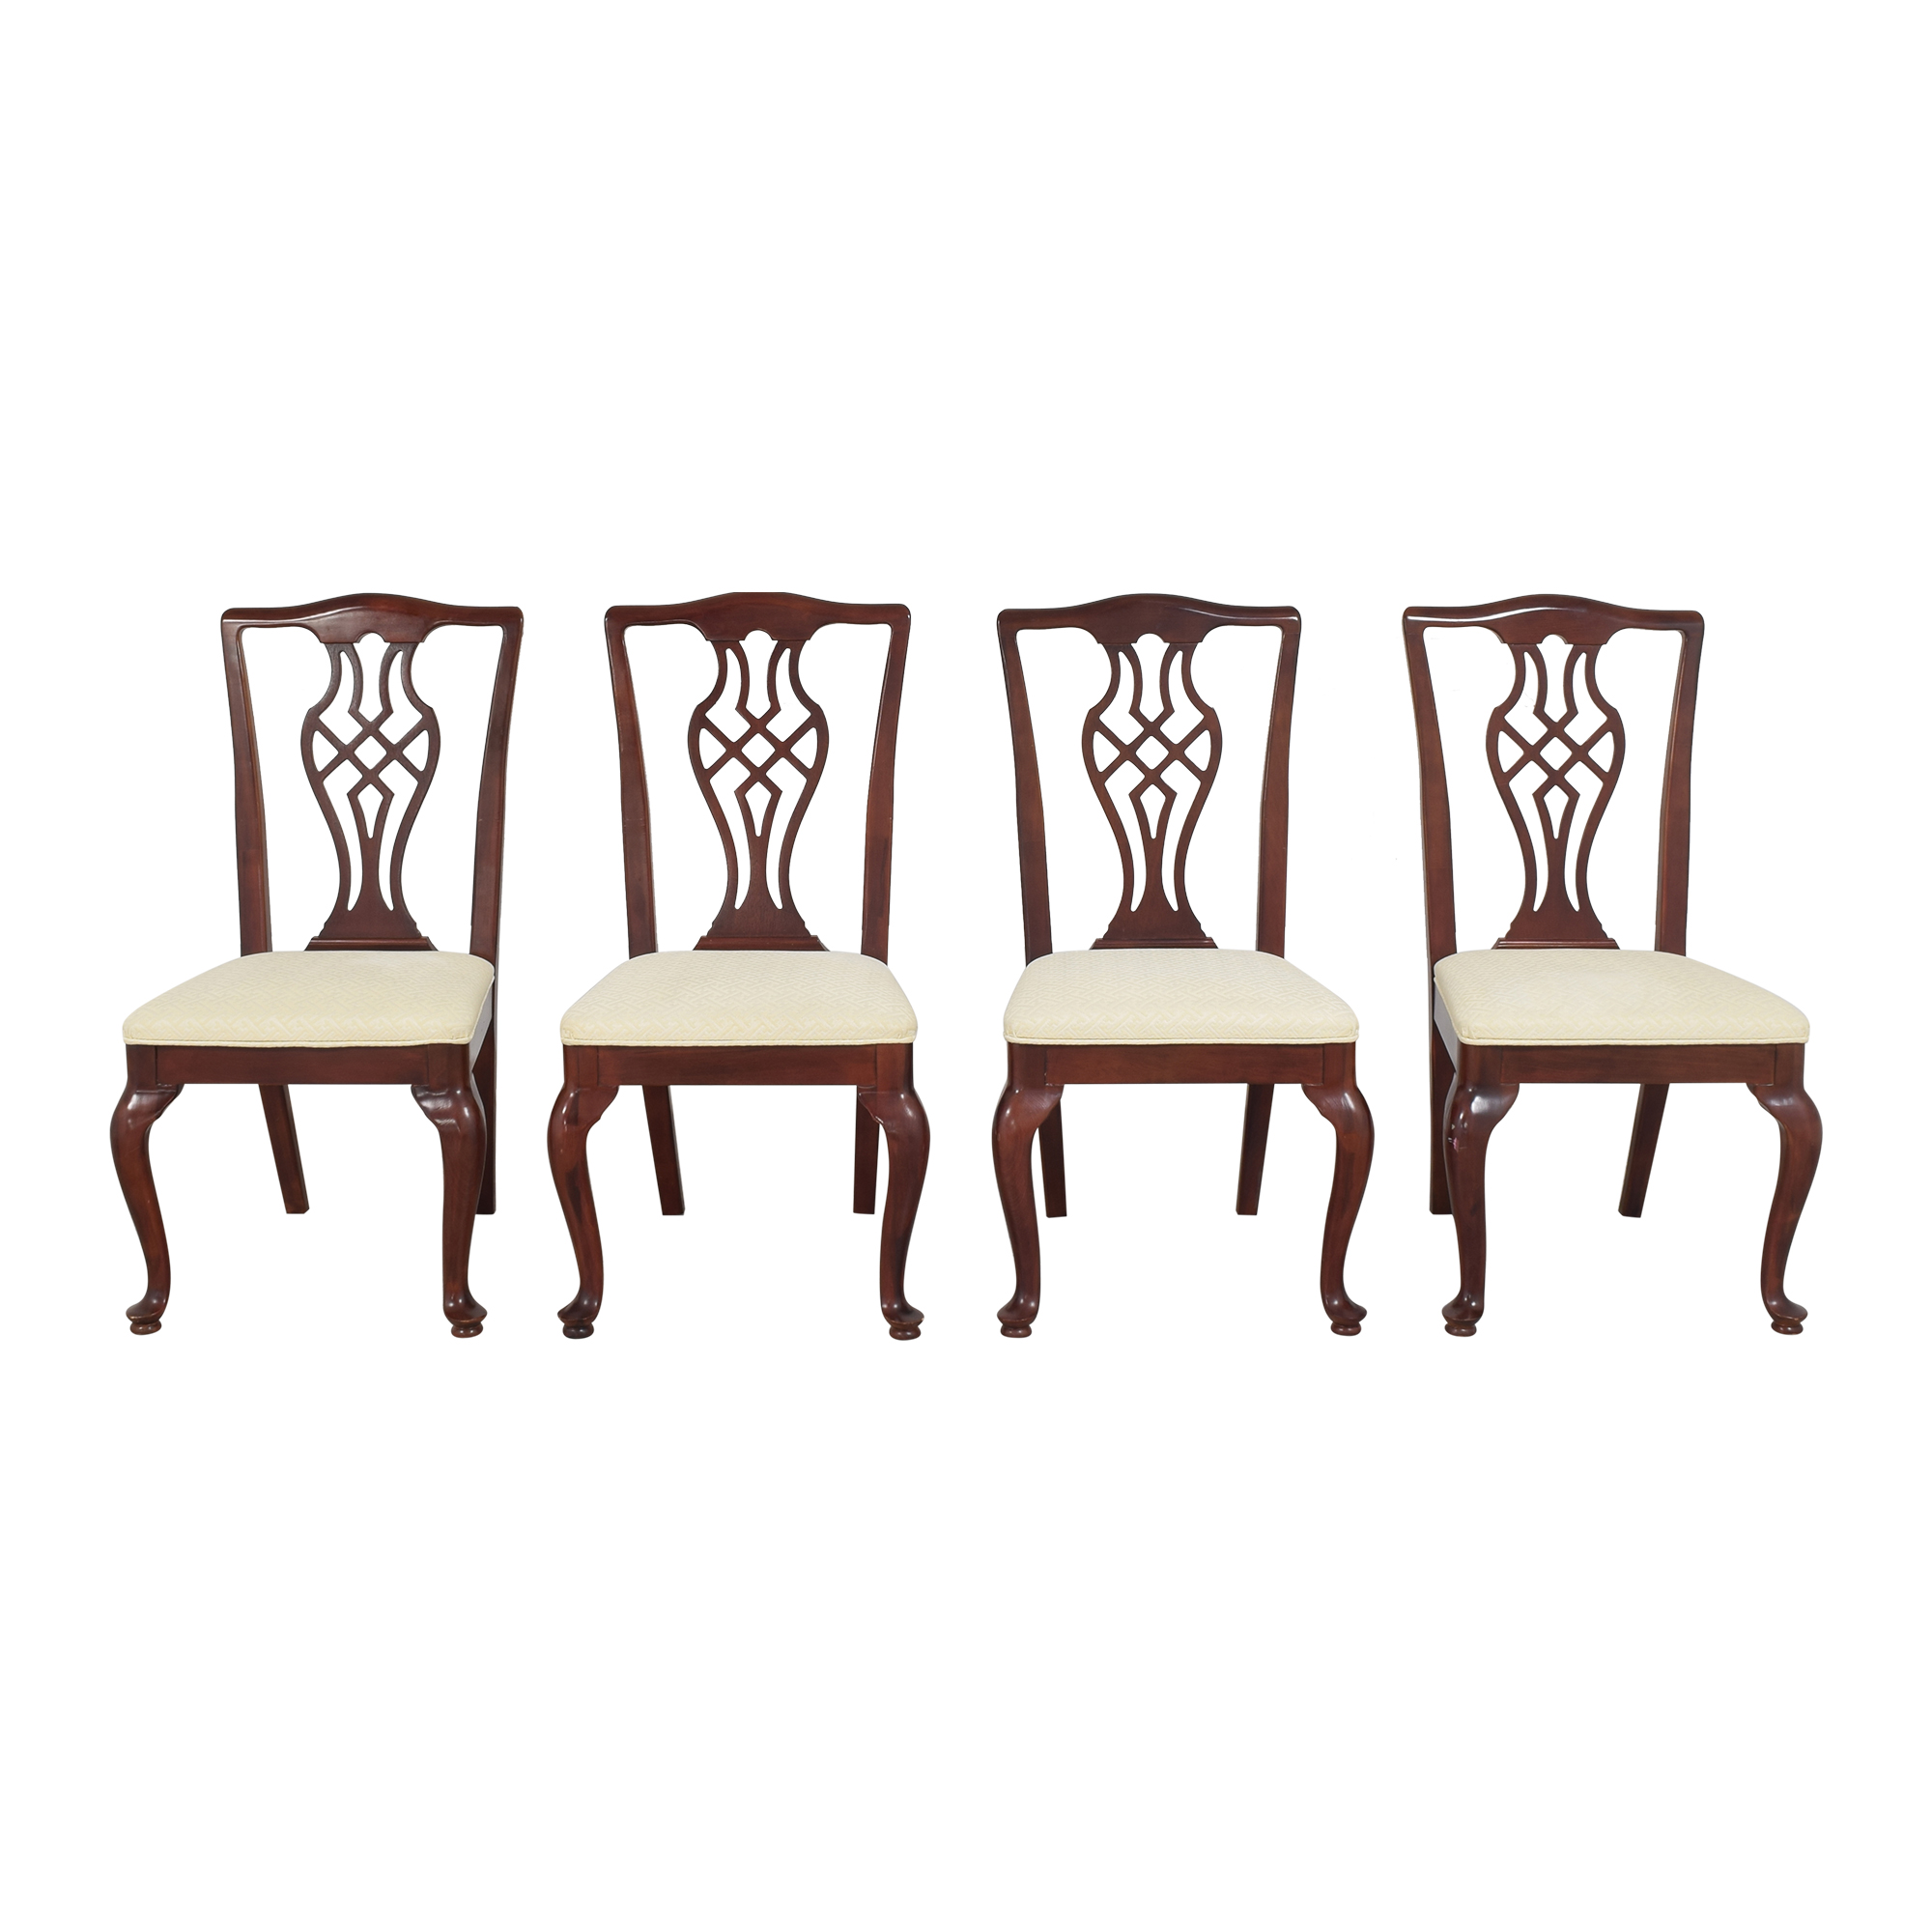 shop Drexel Heritage Drexel Heritage Chippendale Dining Chairs online